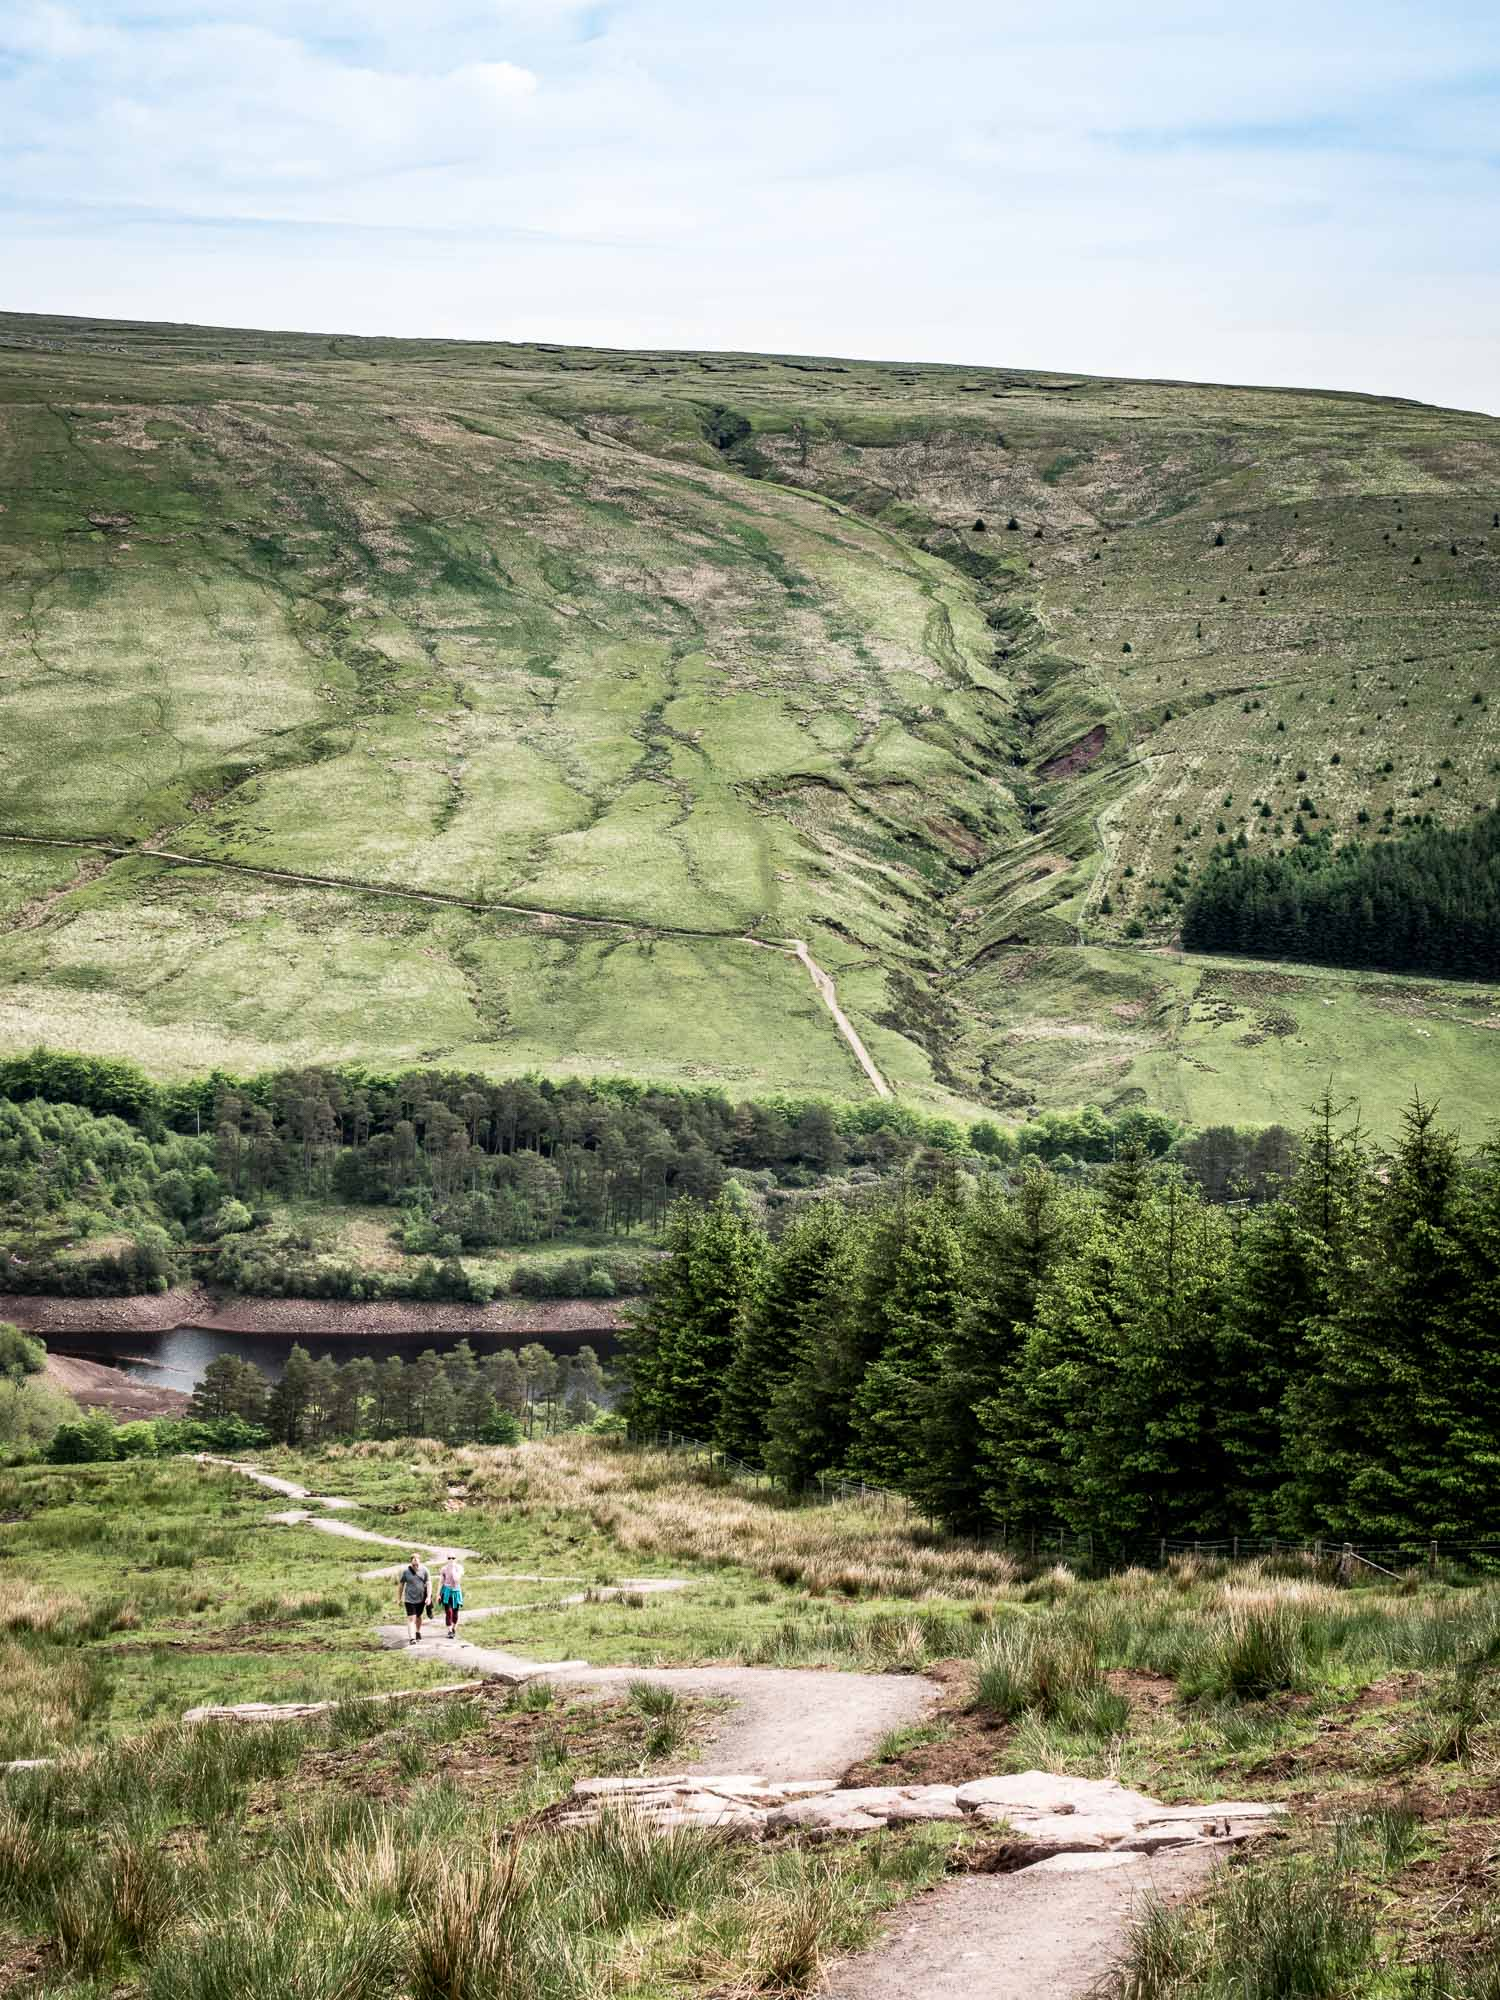 A Landscape Photograph Showing Two Hikers Beginning The Ascent Up To Graig Fan Ddu, With Neuadd Reservoir In The Background, In The Brecon Beacons National Park, Wales.